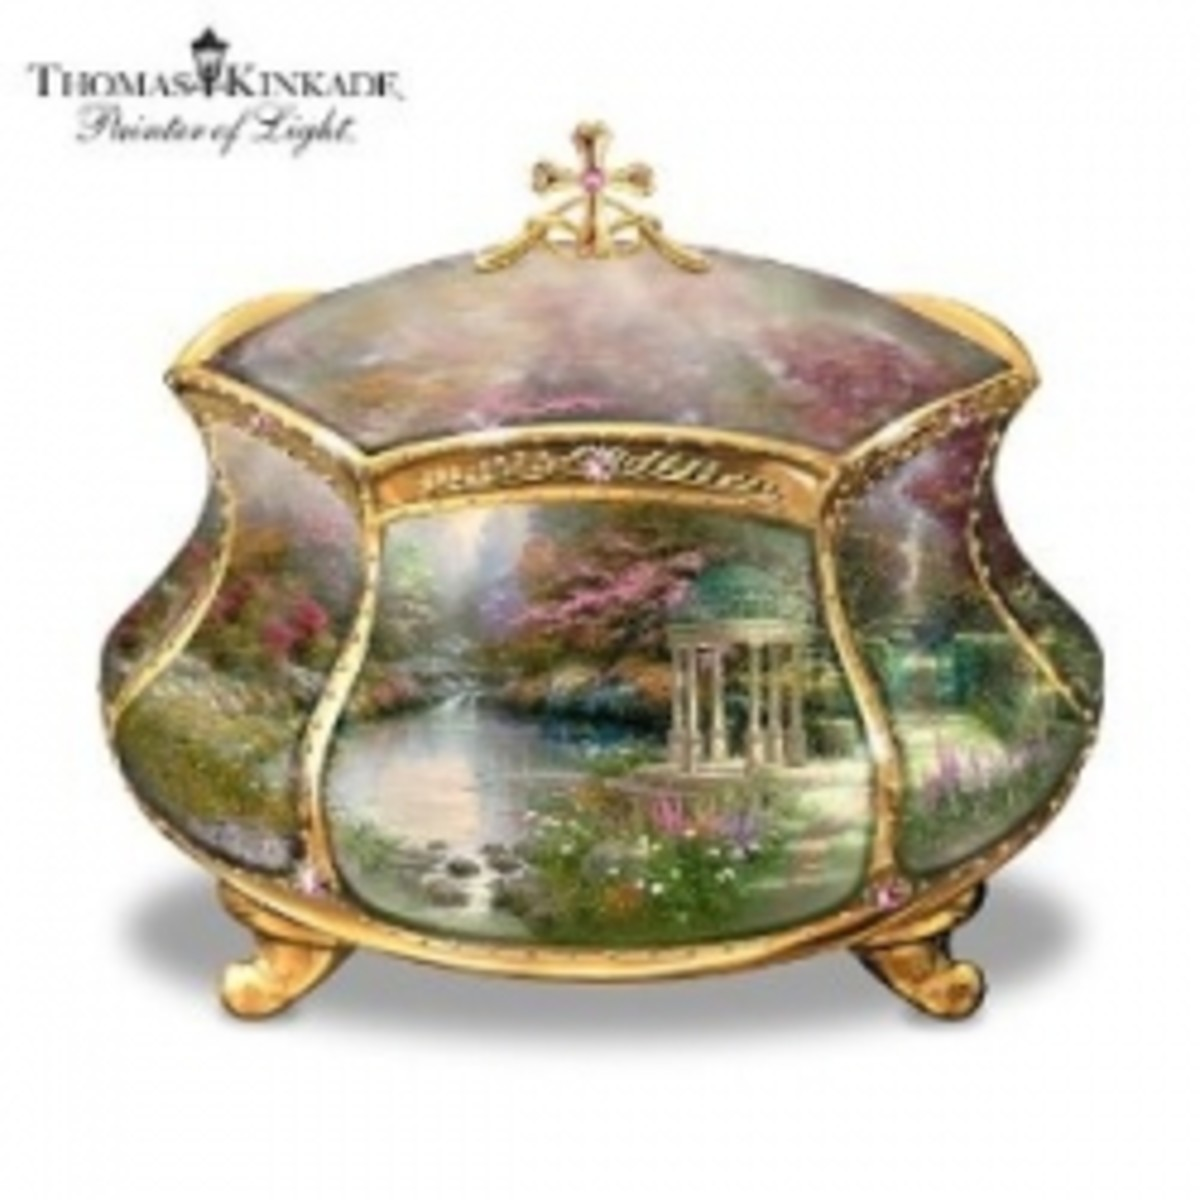 Kinkade Music Boxes and More Showcase